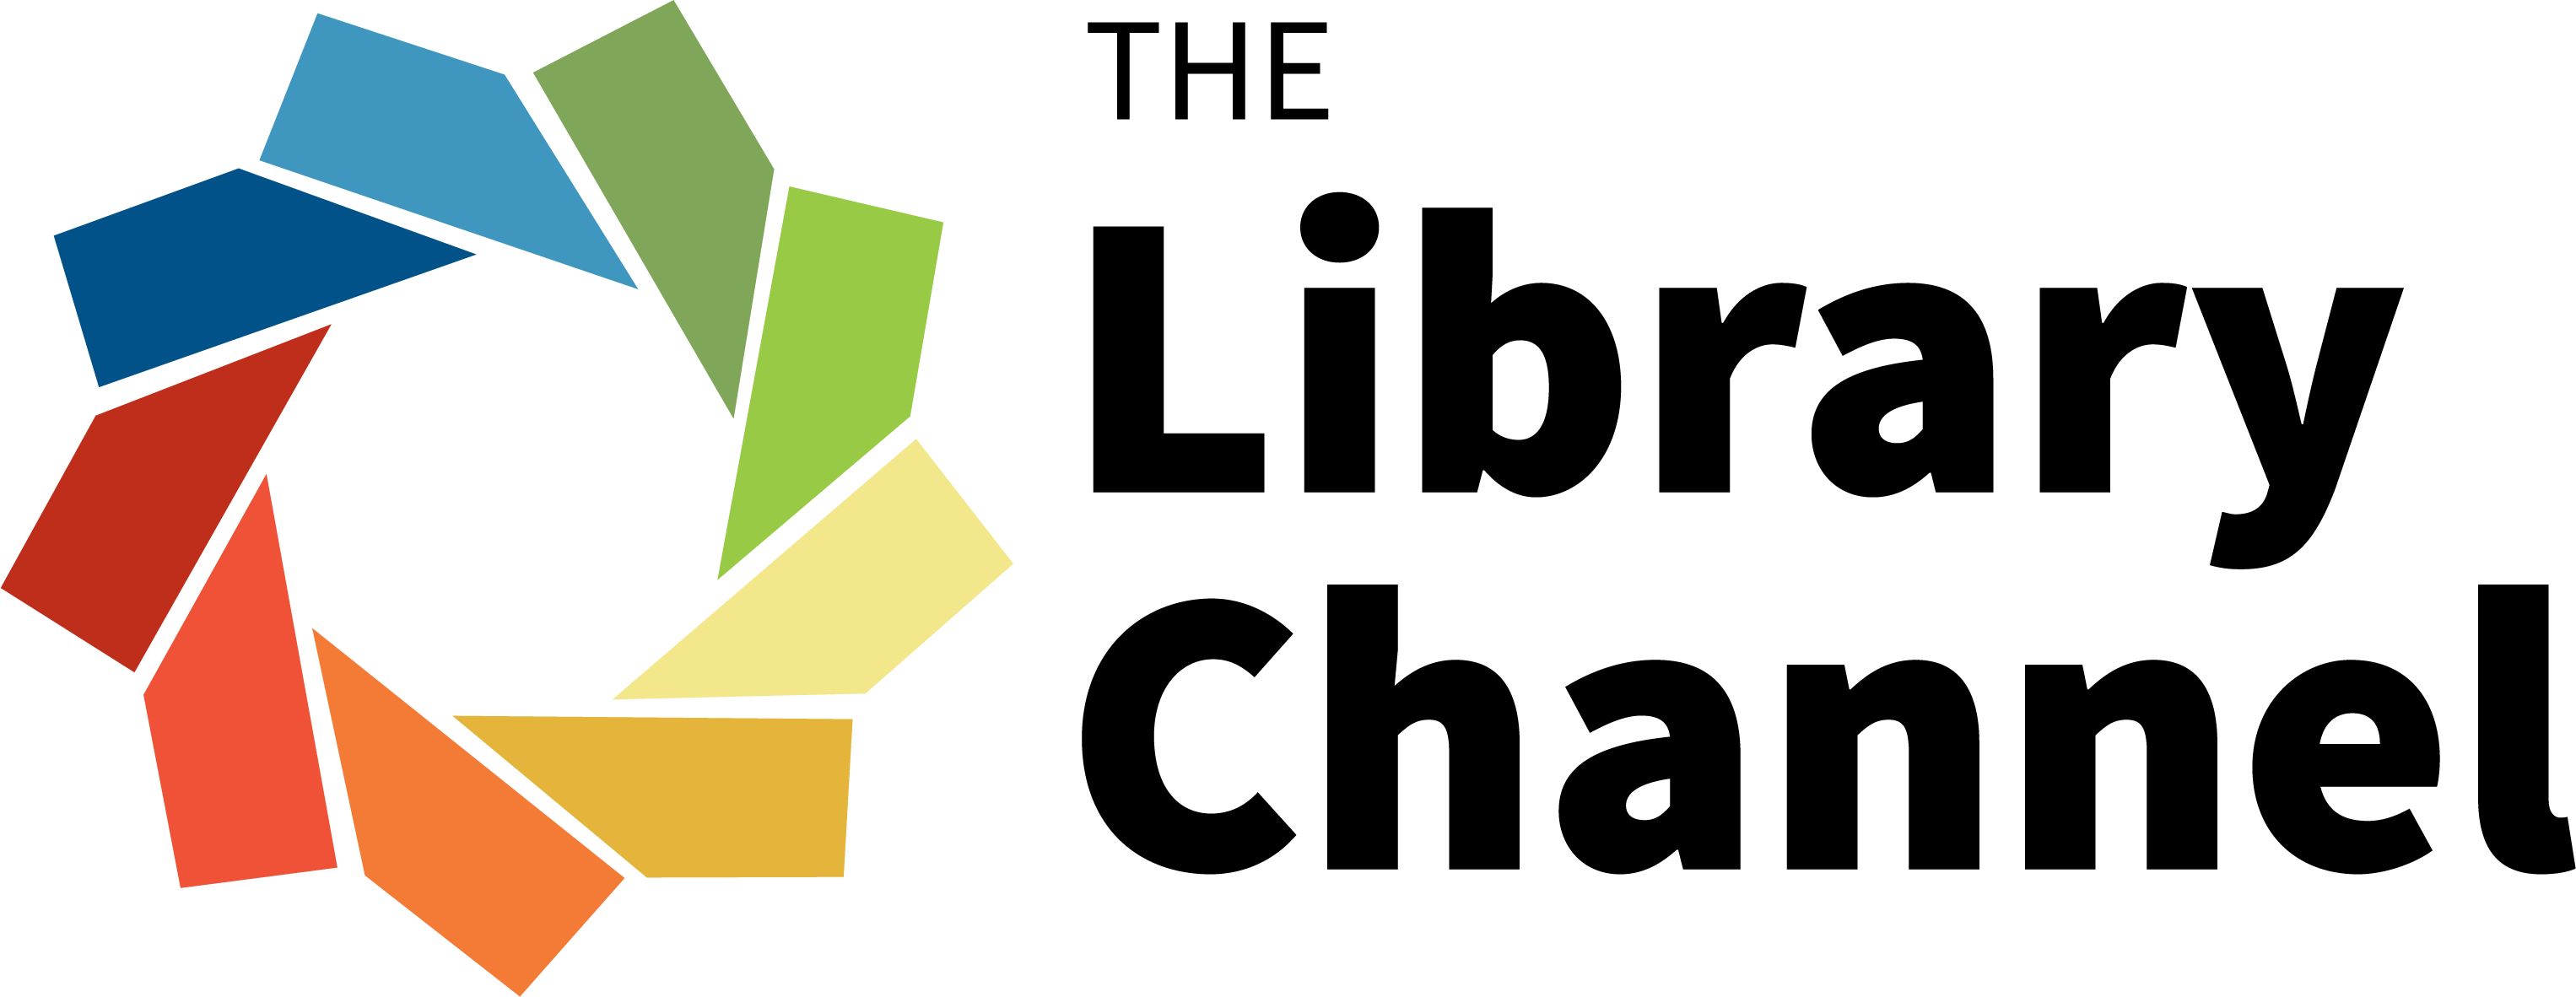 The Library Channel logo